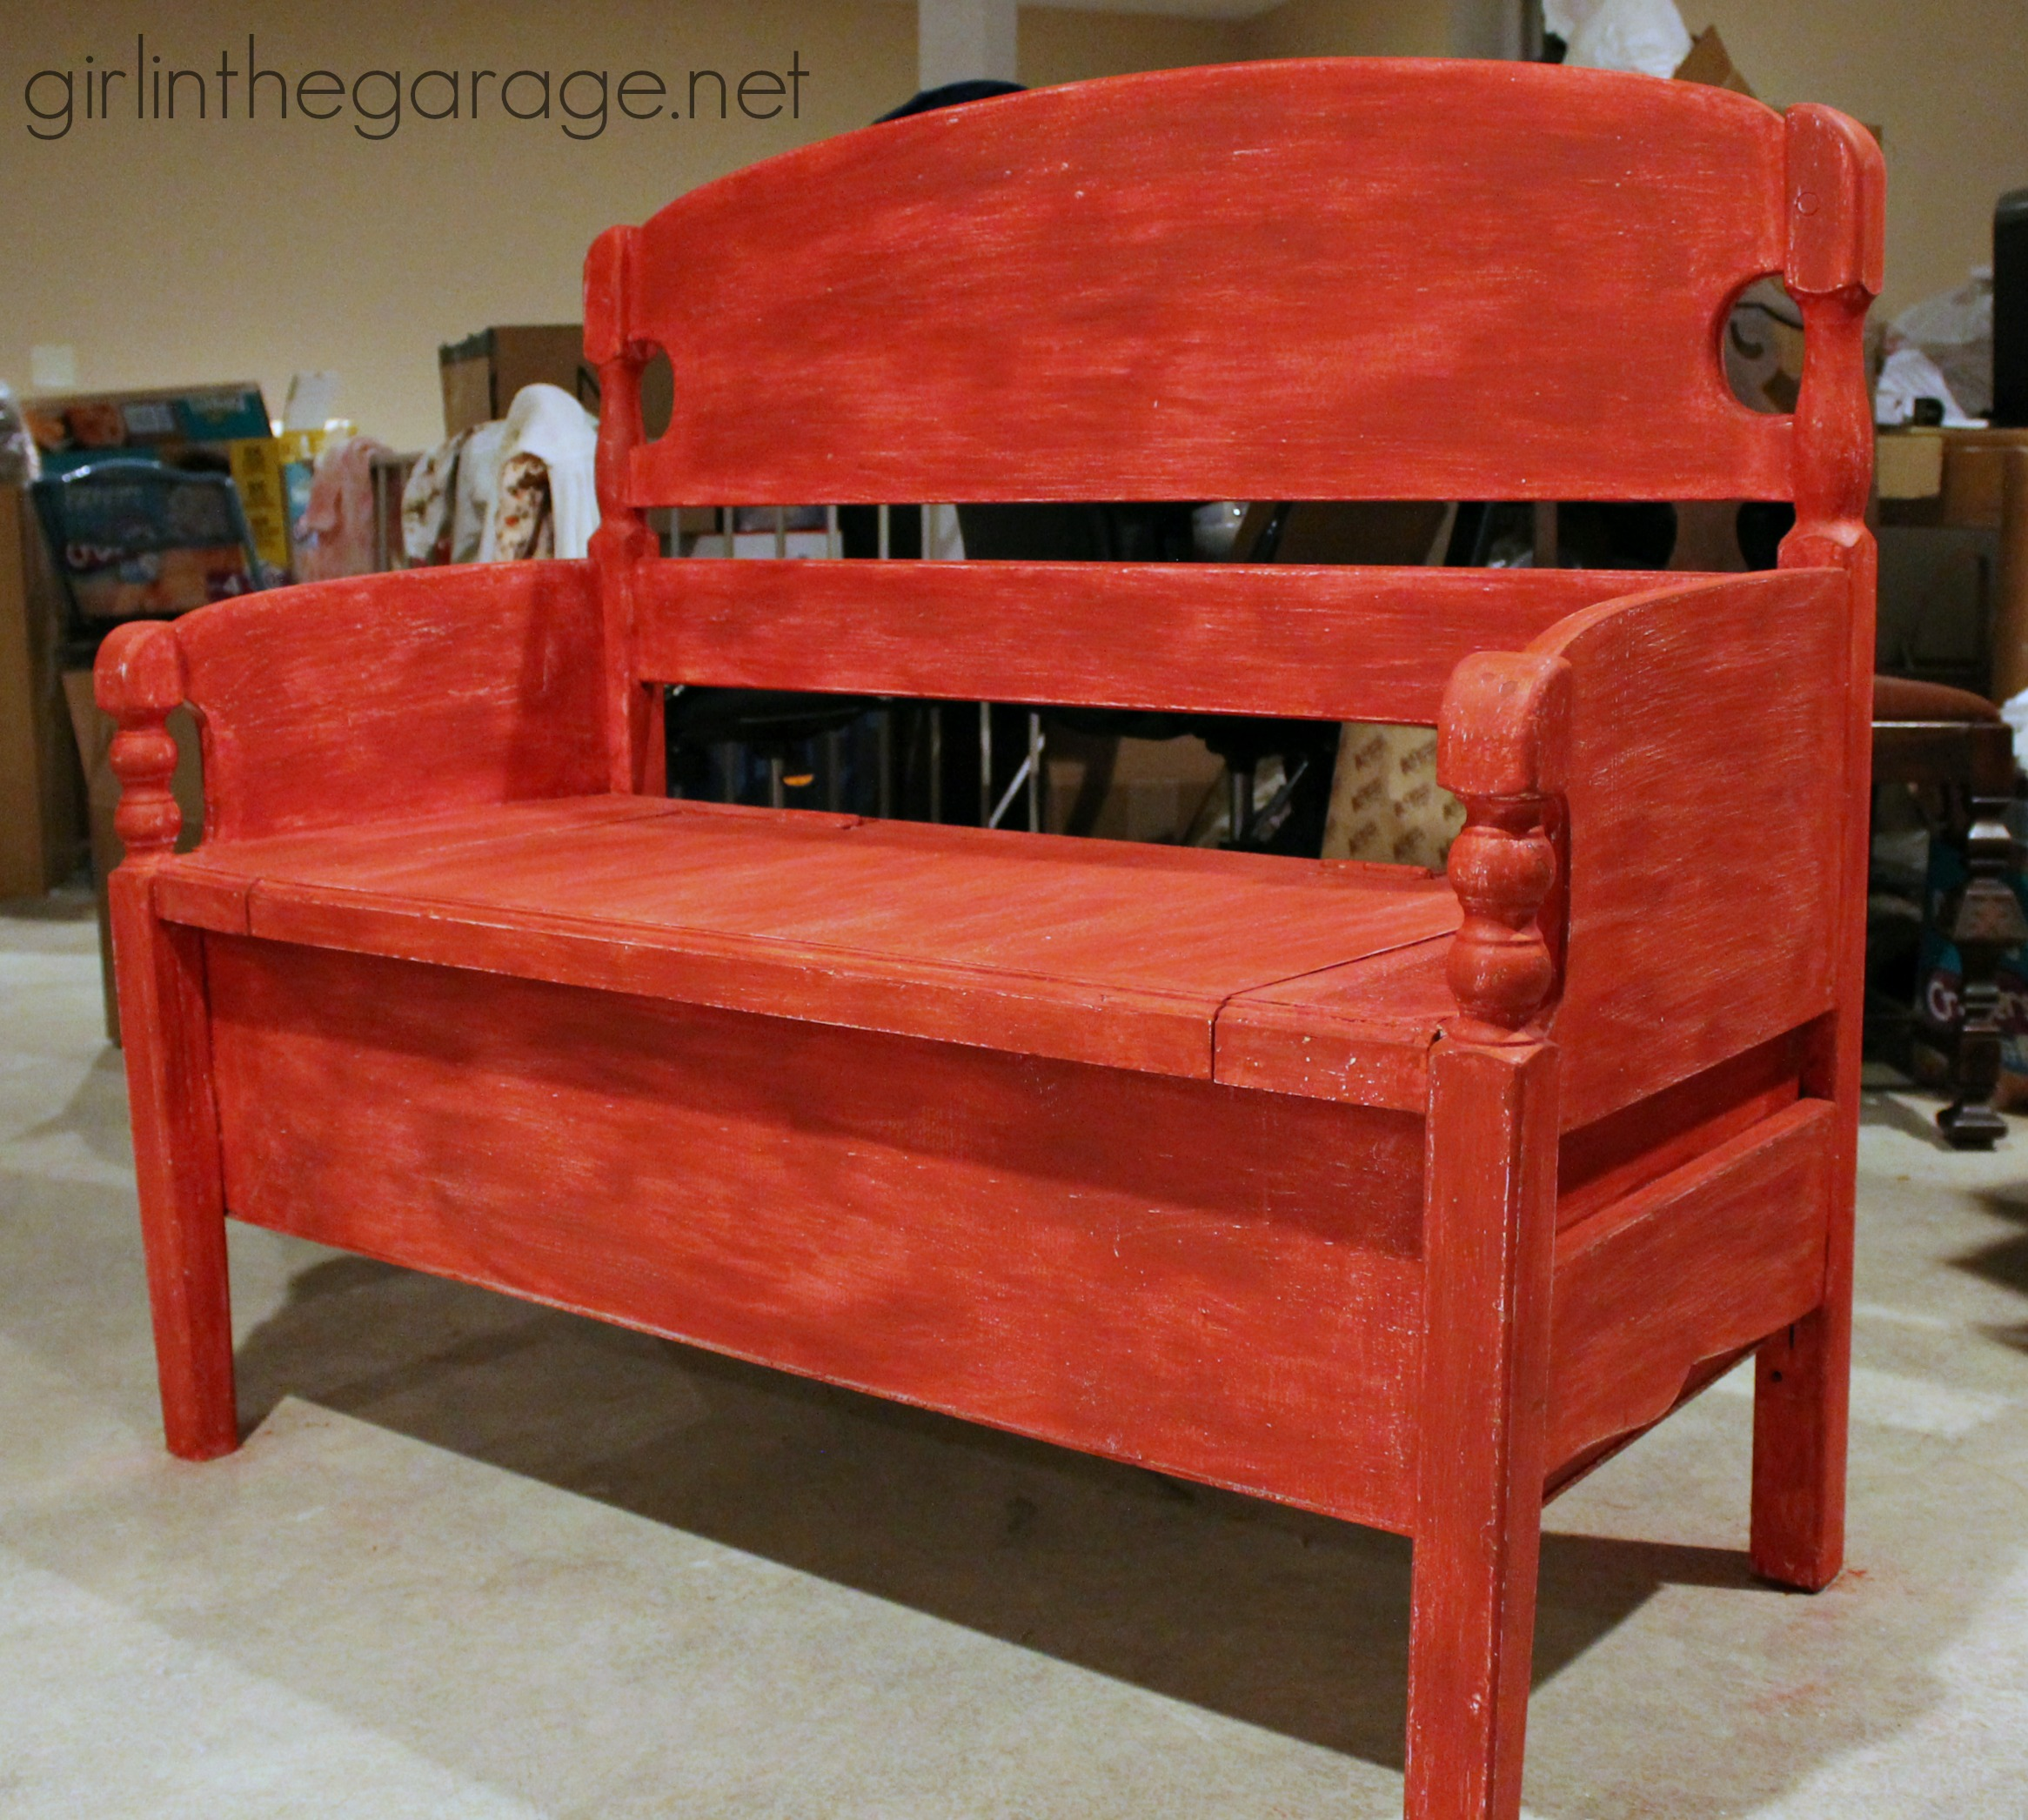 Headboard To Bench Distressed Headboard Bench Girl In The Garager